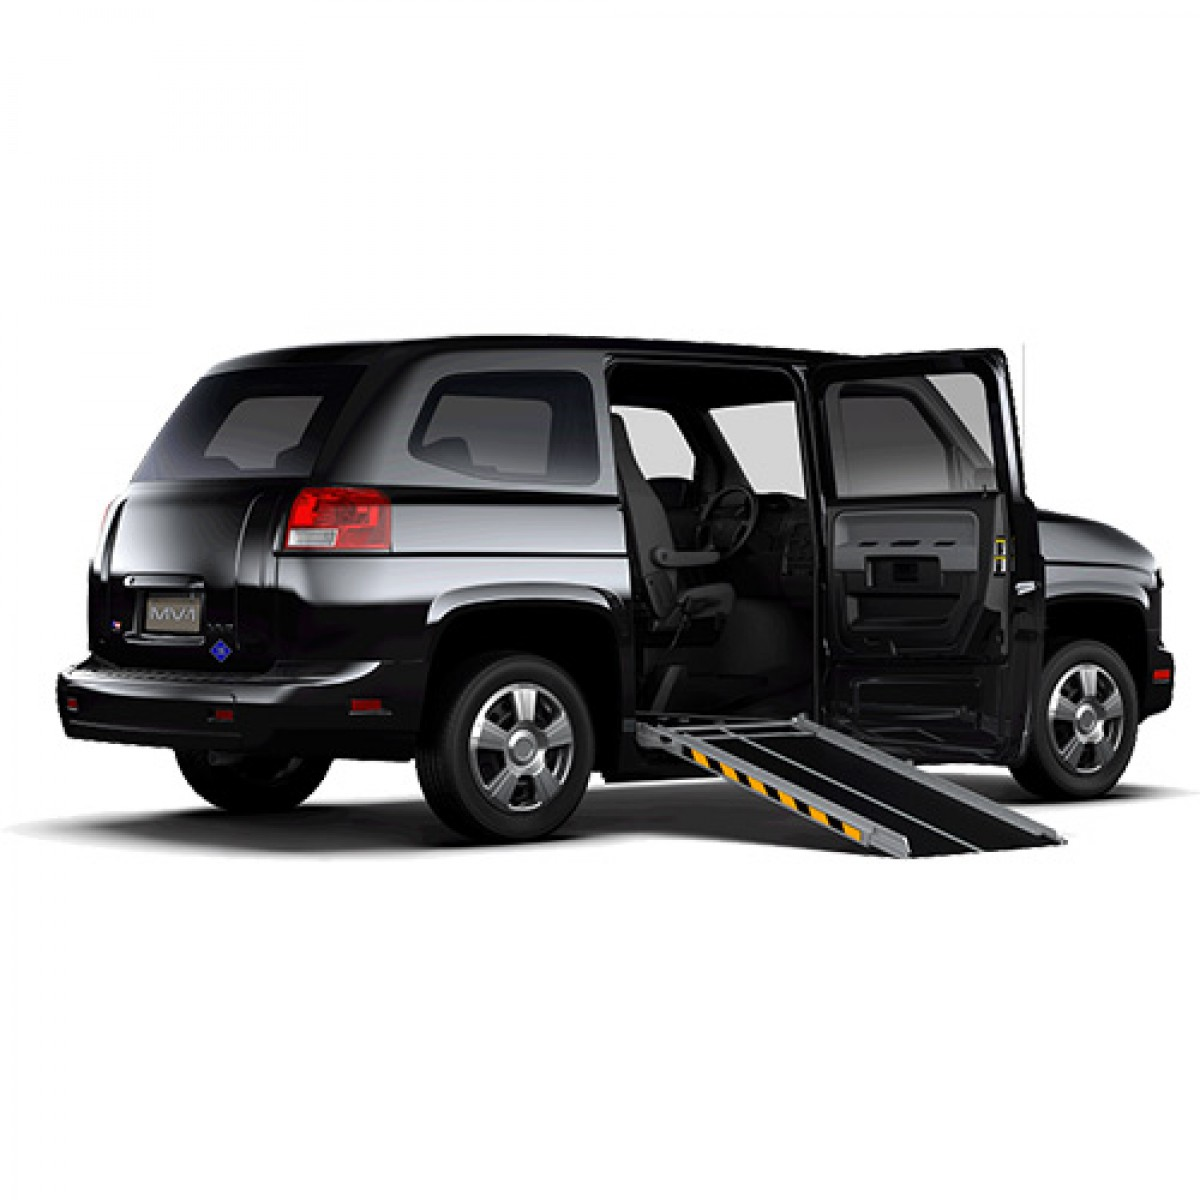 Mv 1 By Mobility Ventures New York Main Mobility